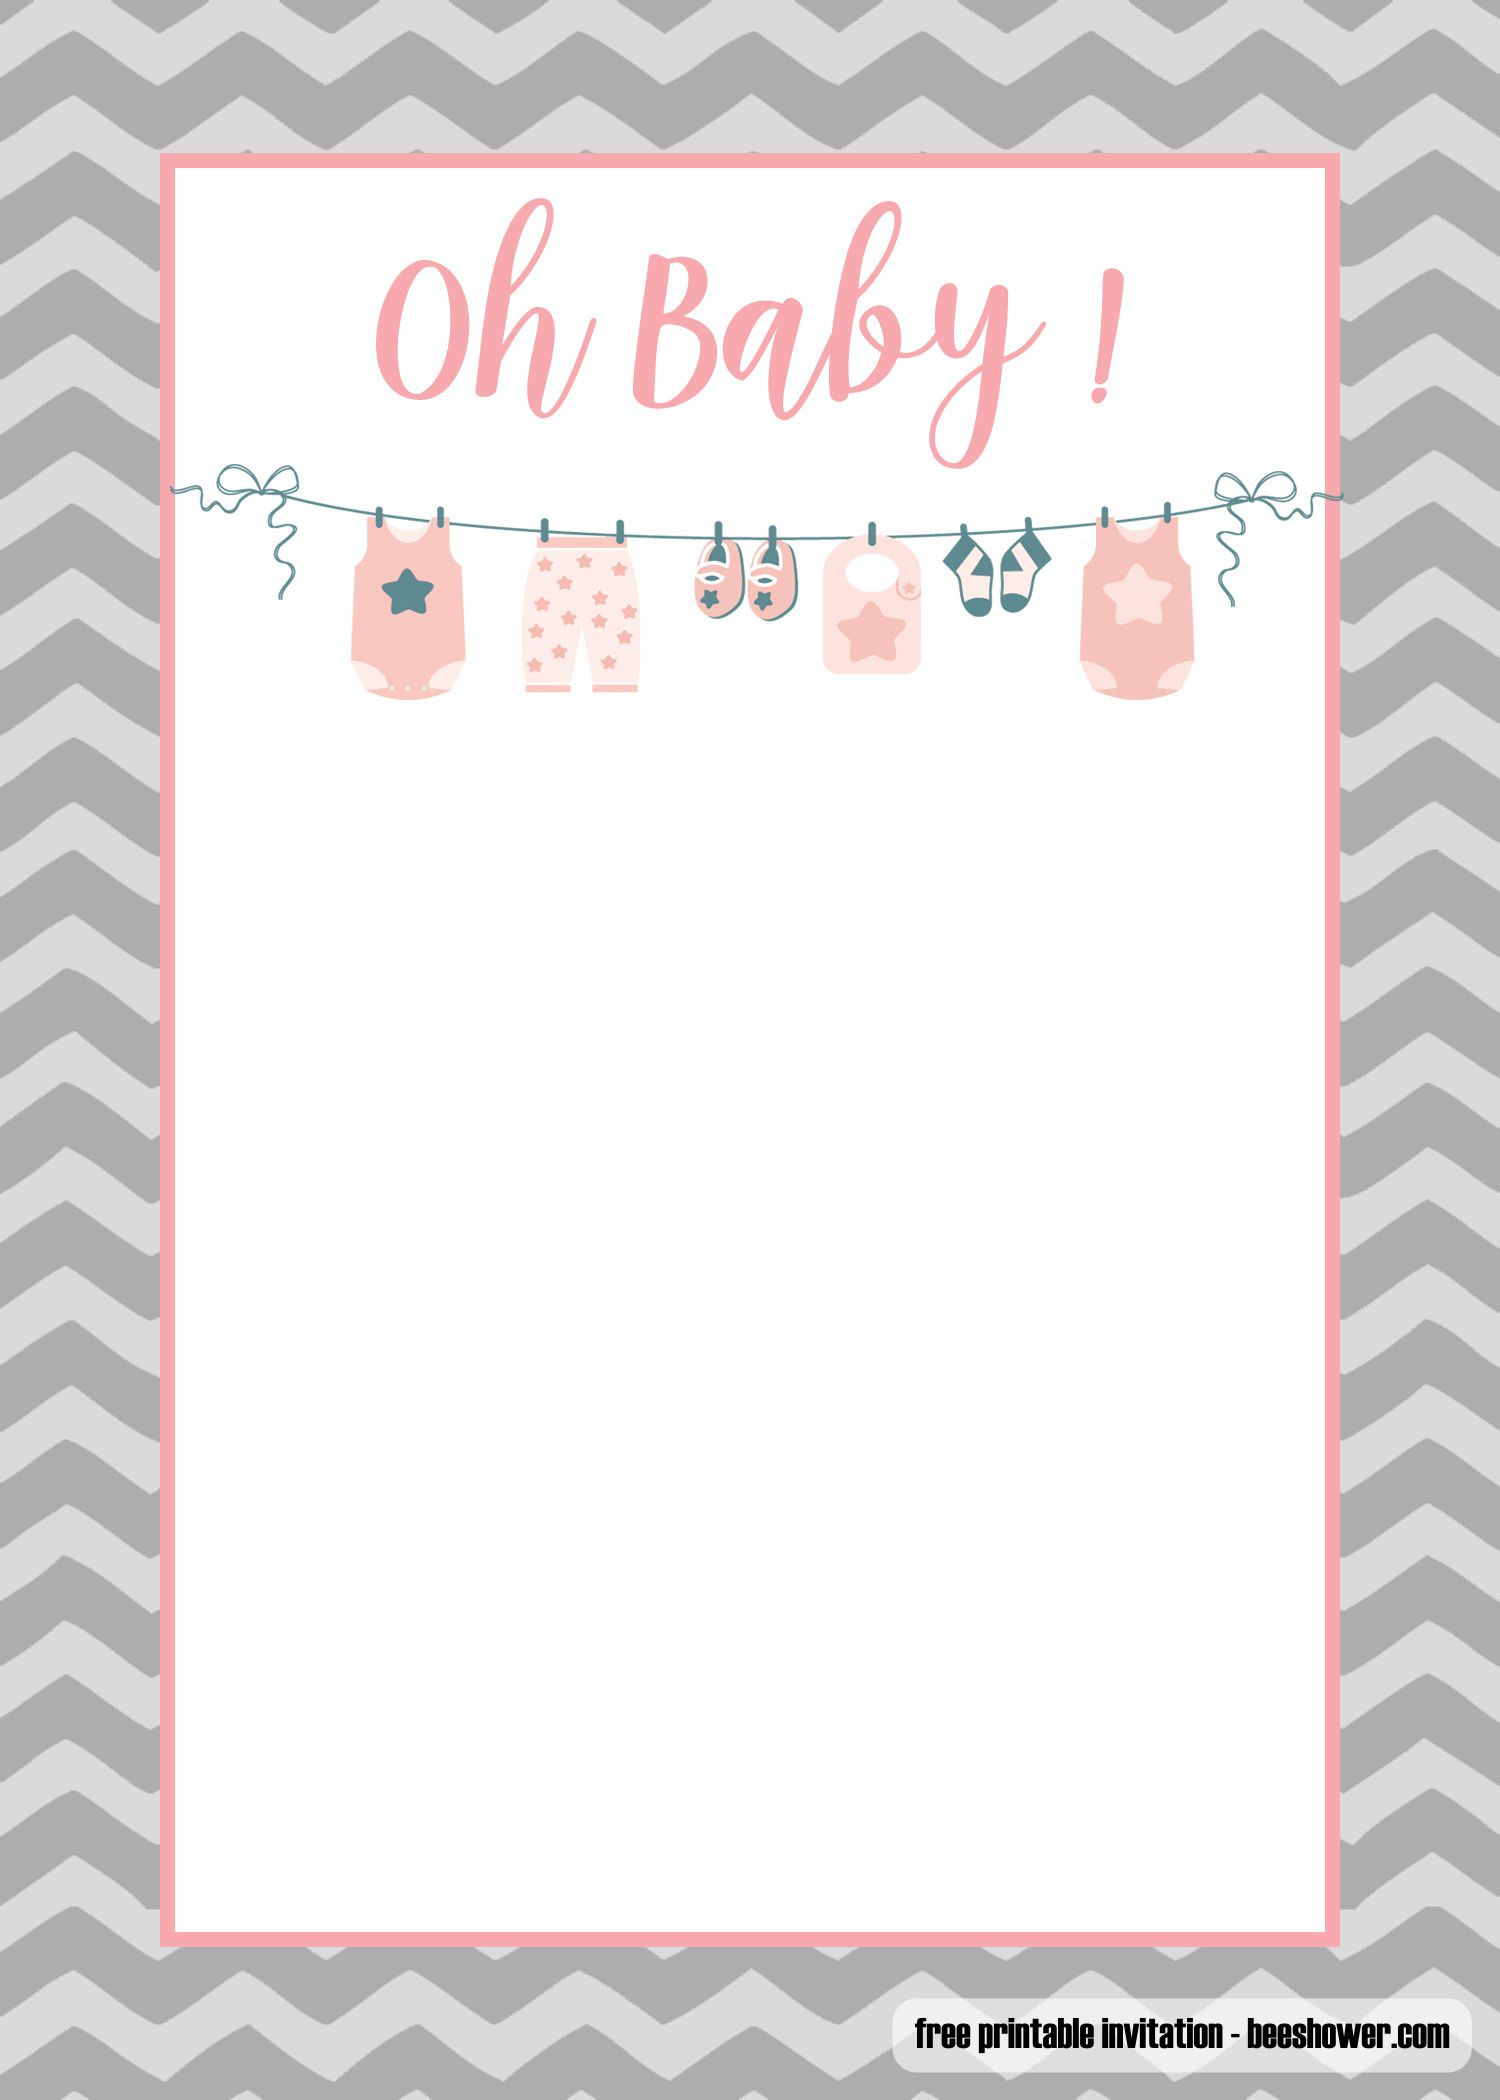 006 Incredible Baby Shower Invite Template Word High Definition  Invitation Wording Sample Free ExampleFull